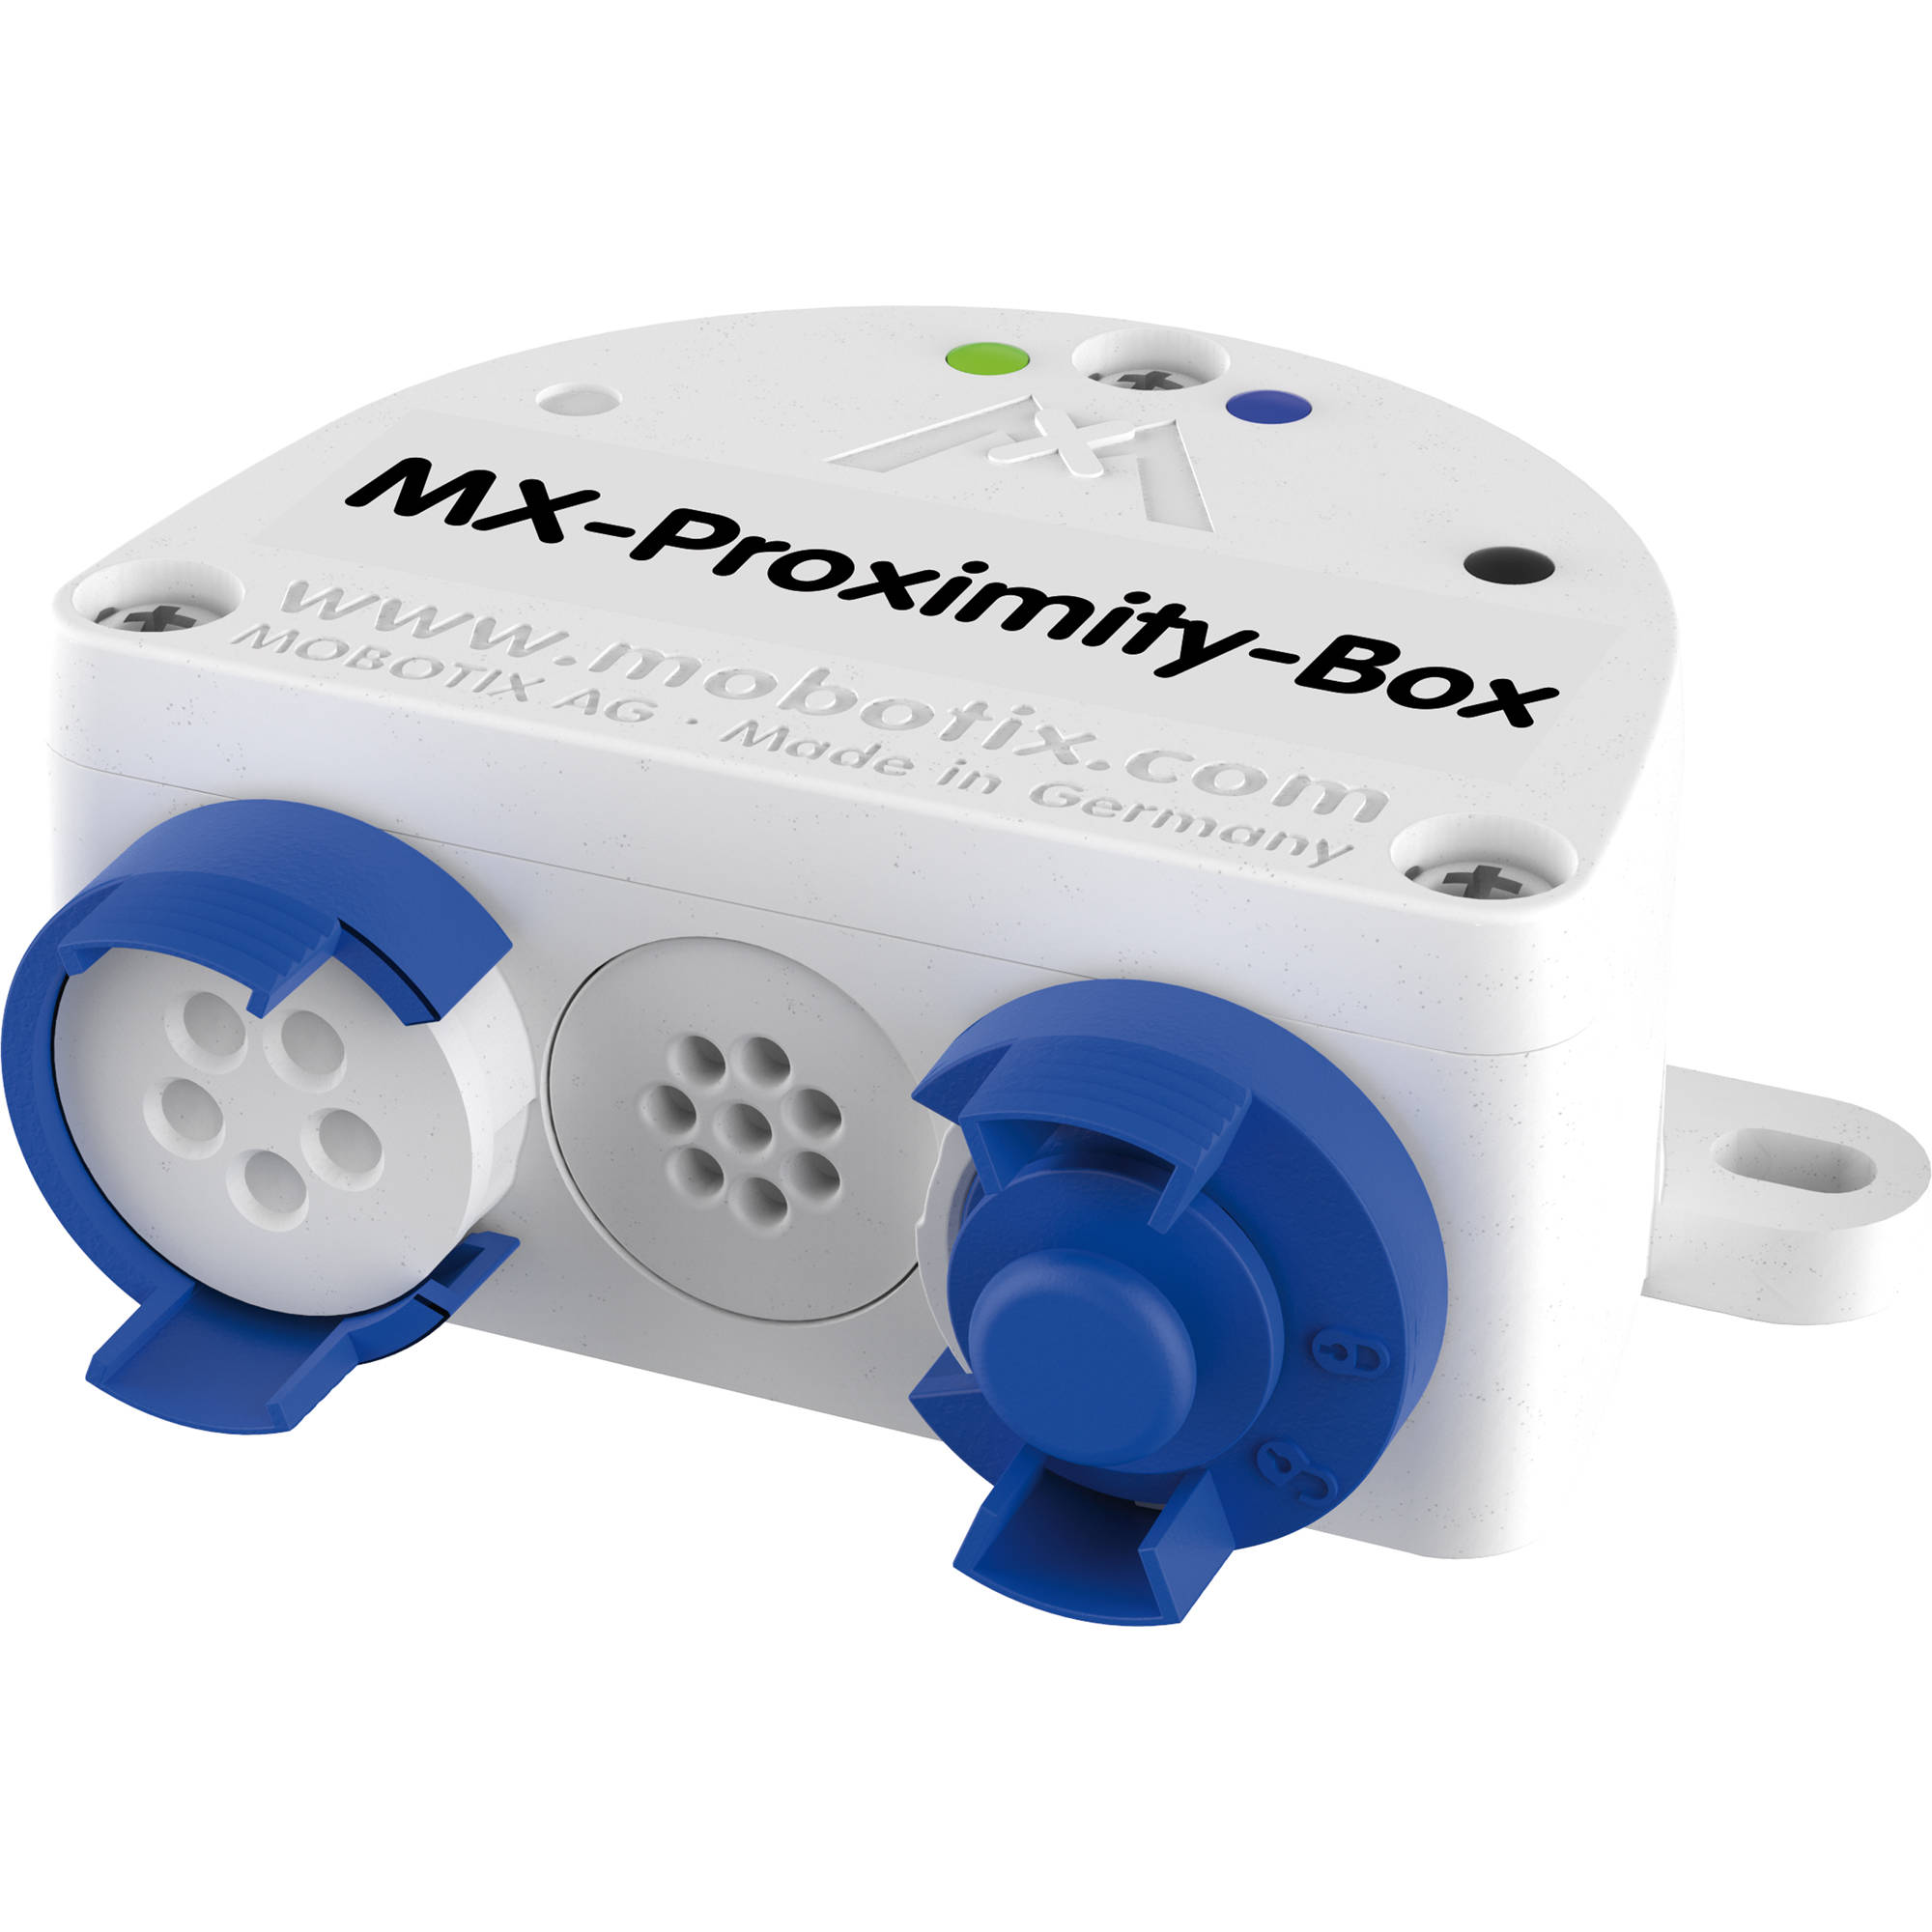 Mobotix Motion Detector Module With Radar Sensor Mx Prox Box Bh This Simple Includes An Audio Amplifier For Driving A